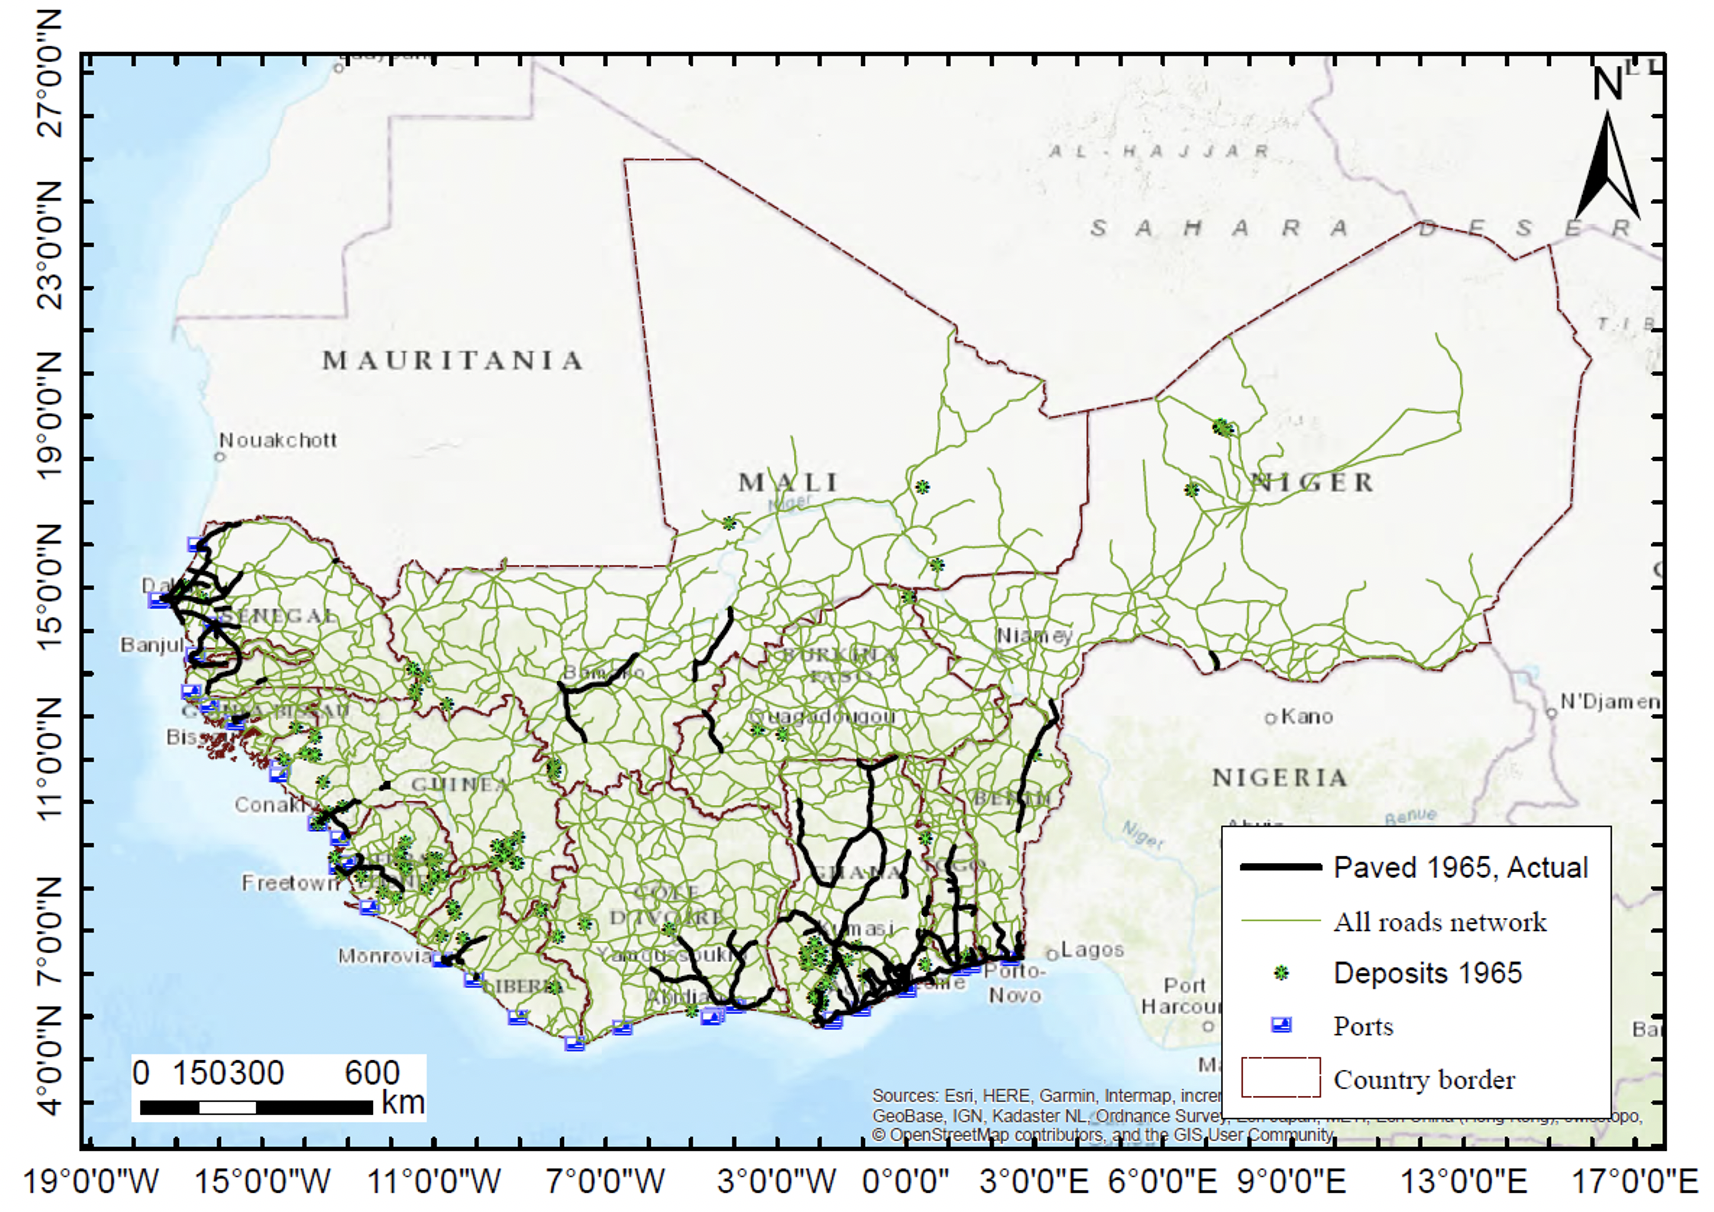 The political economy of Africa's interior-to-coast roads 2